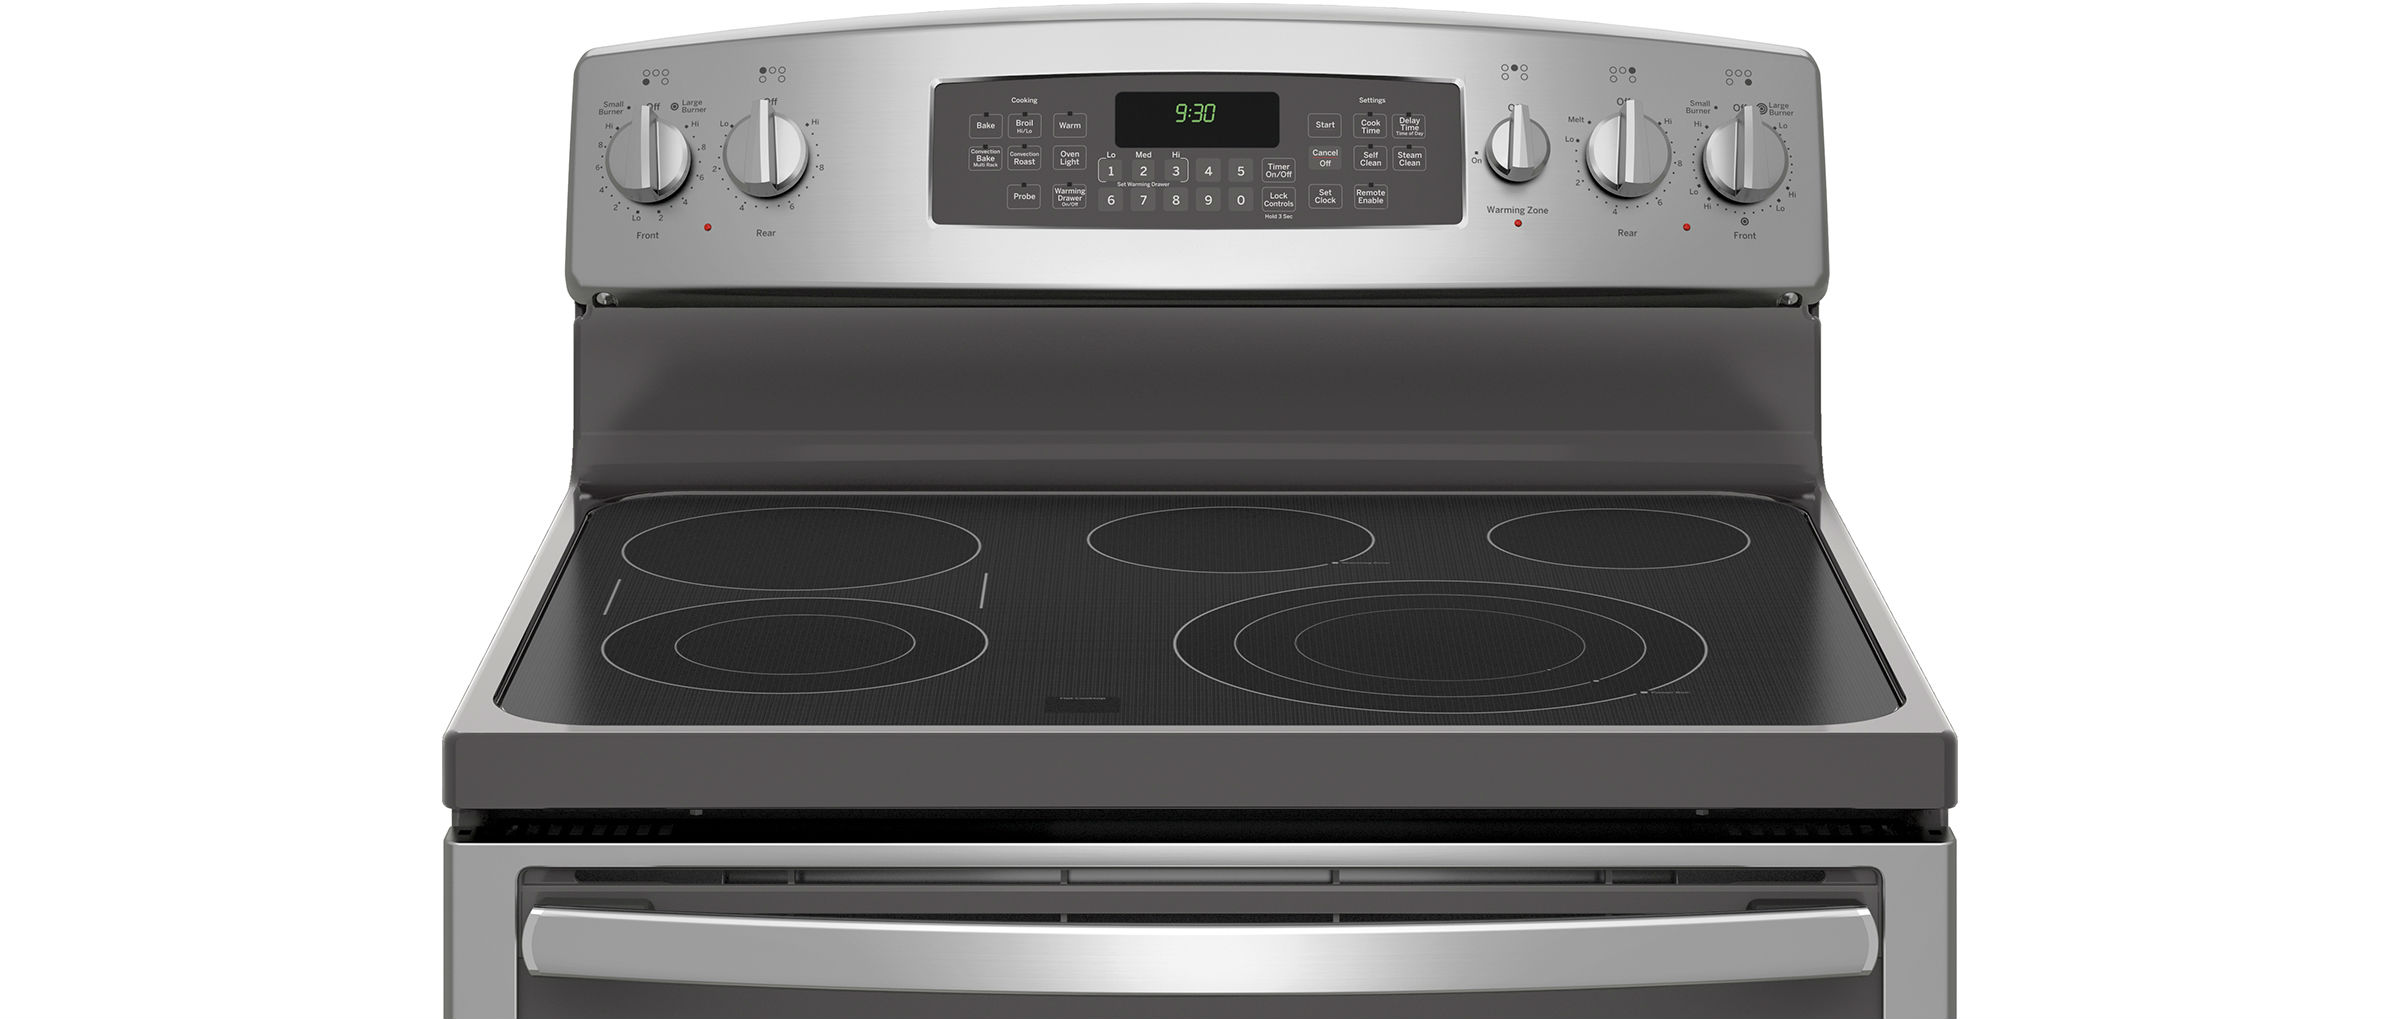 Ge Announces New Line Of App Controlled Appliances